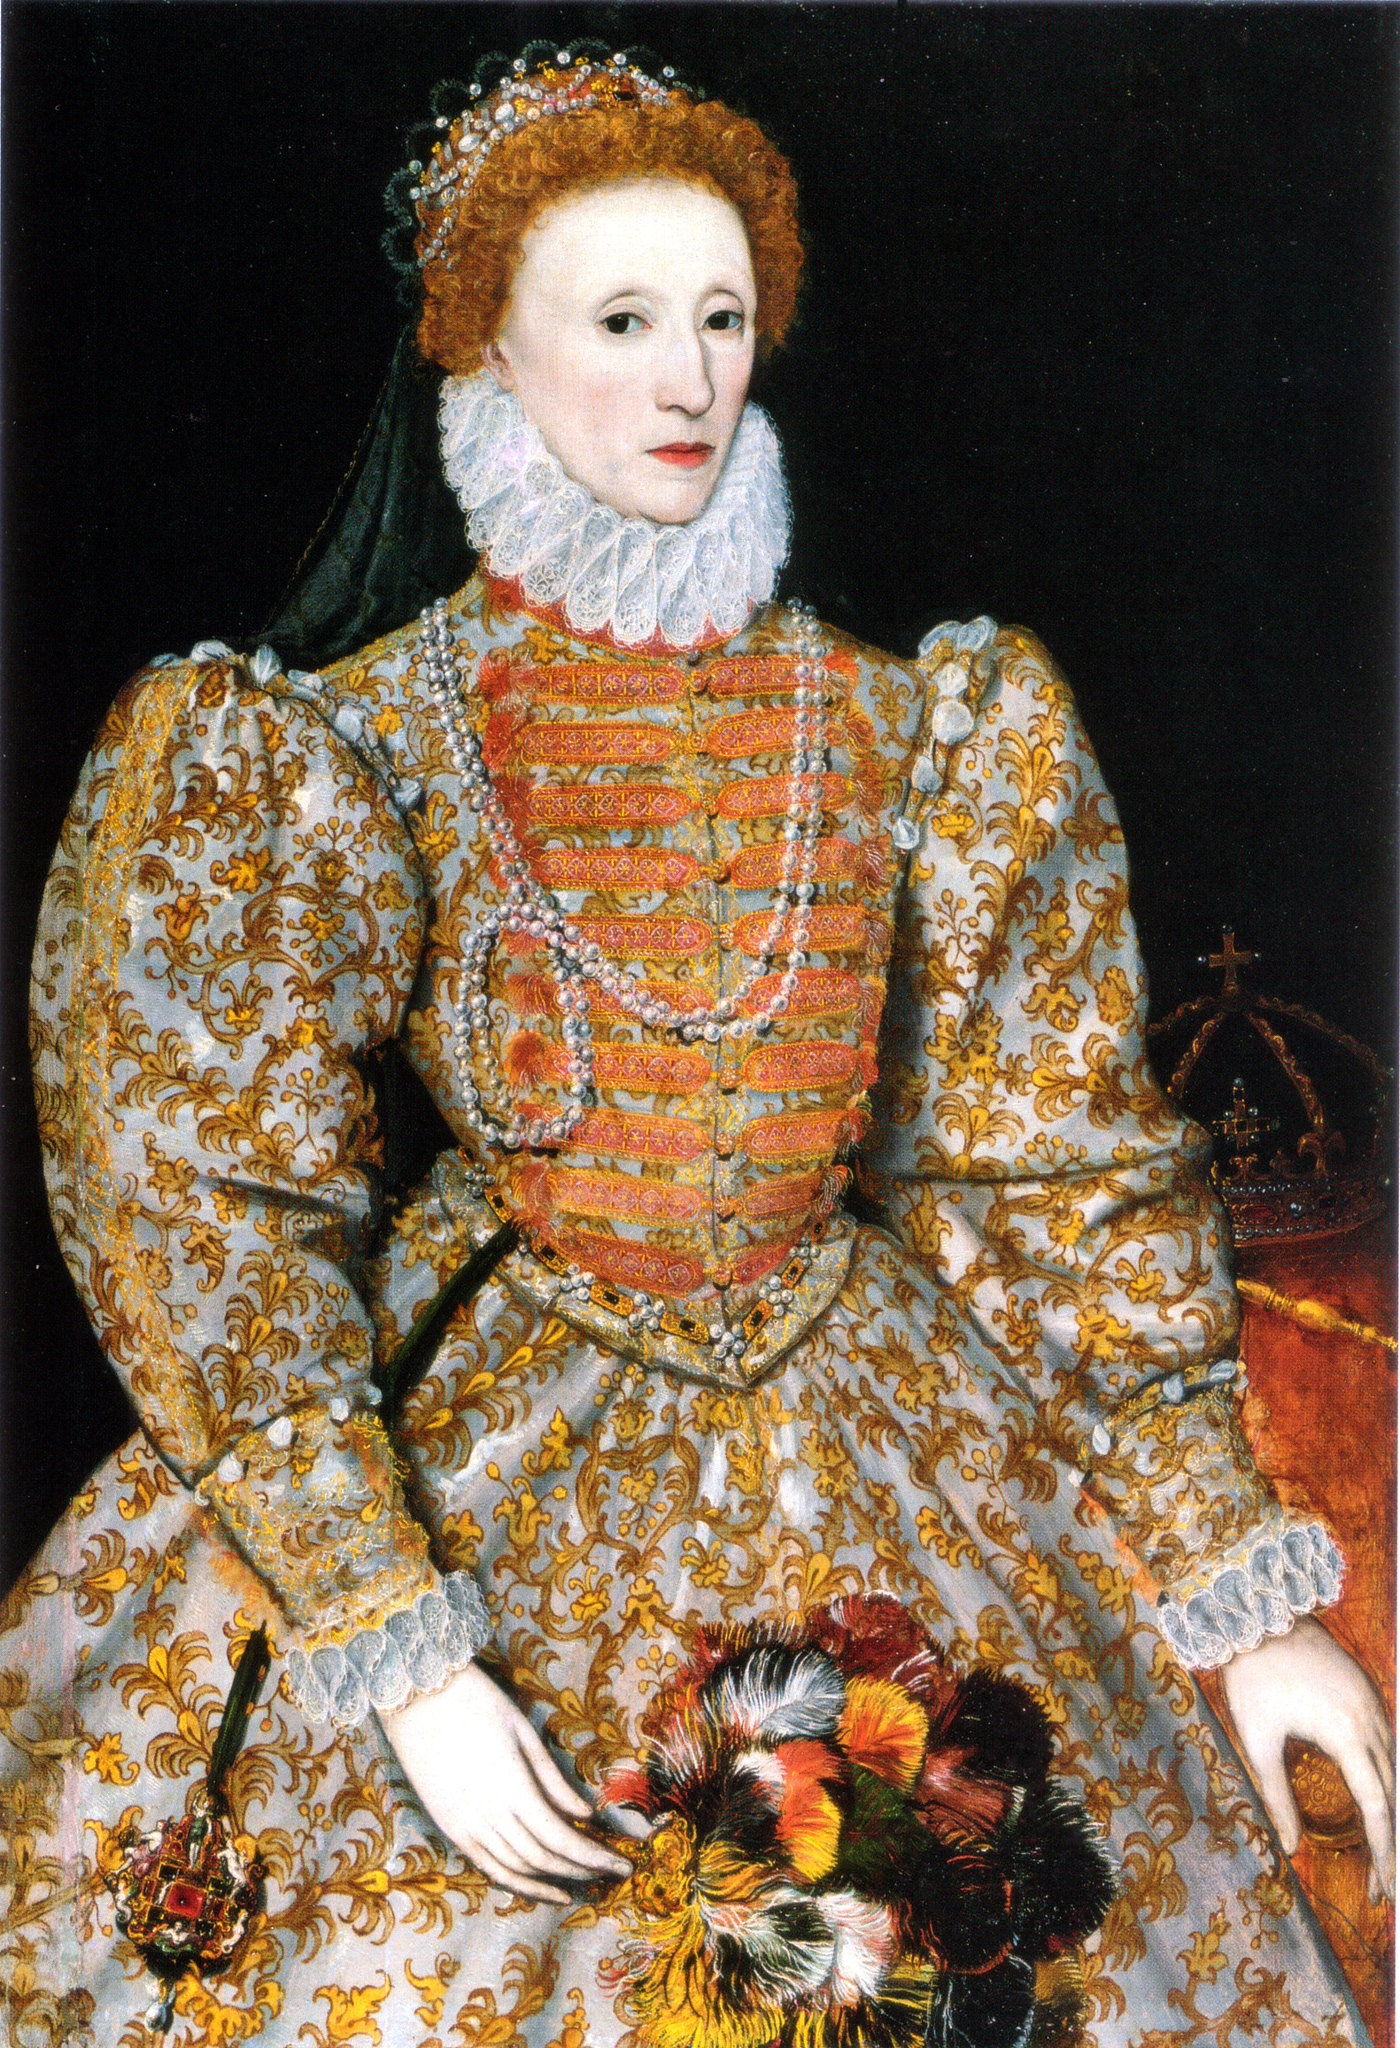 Queen Elizabeth I Darnley Portrait, 1575